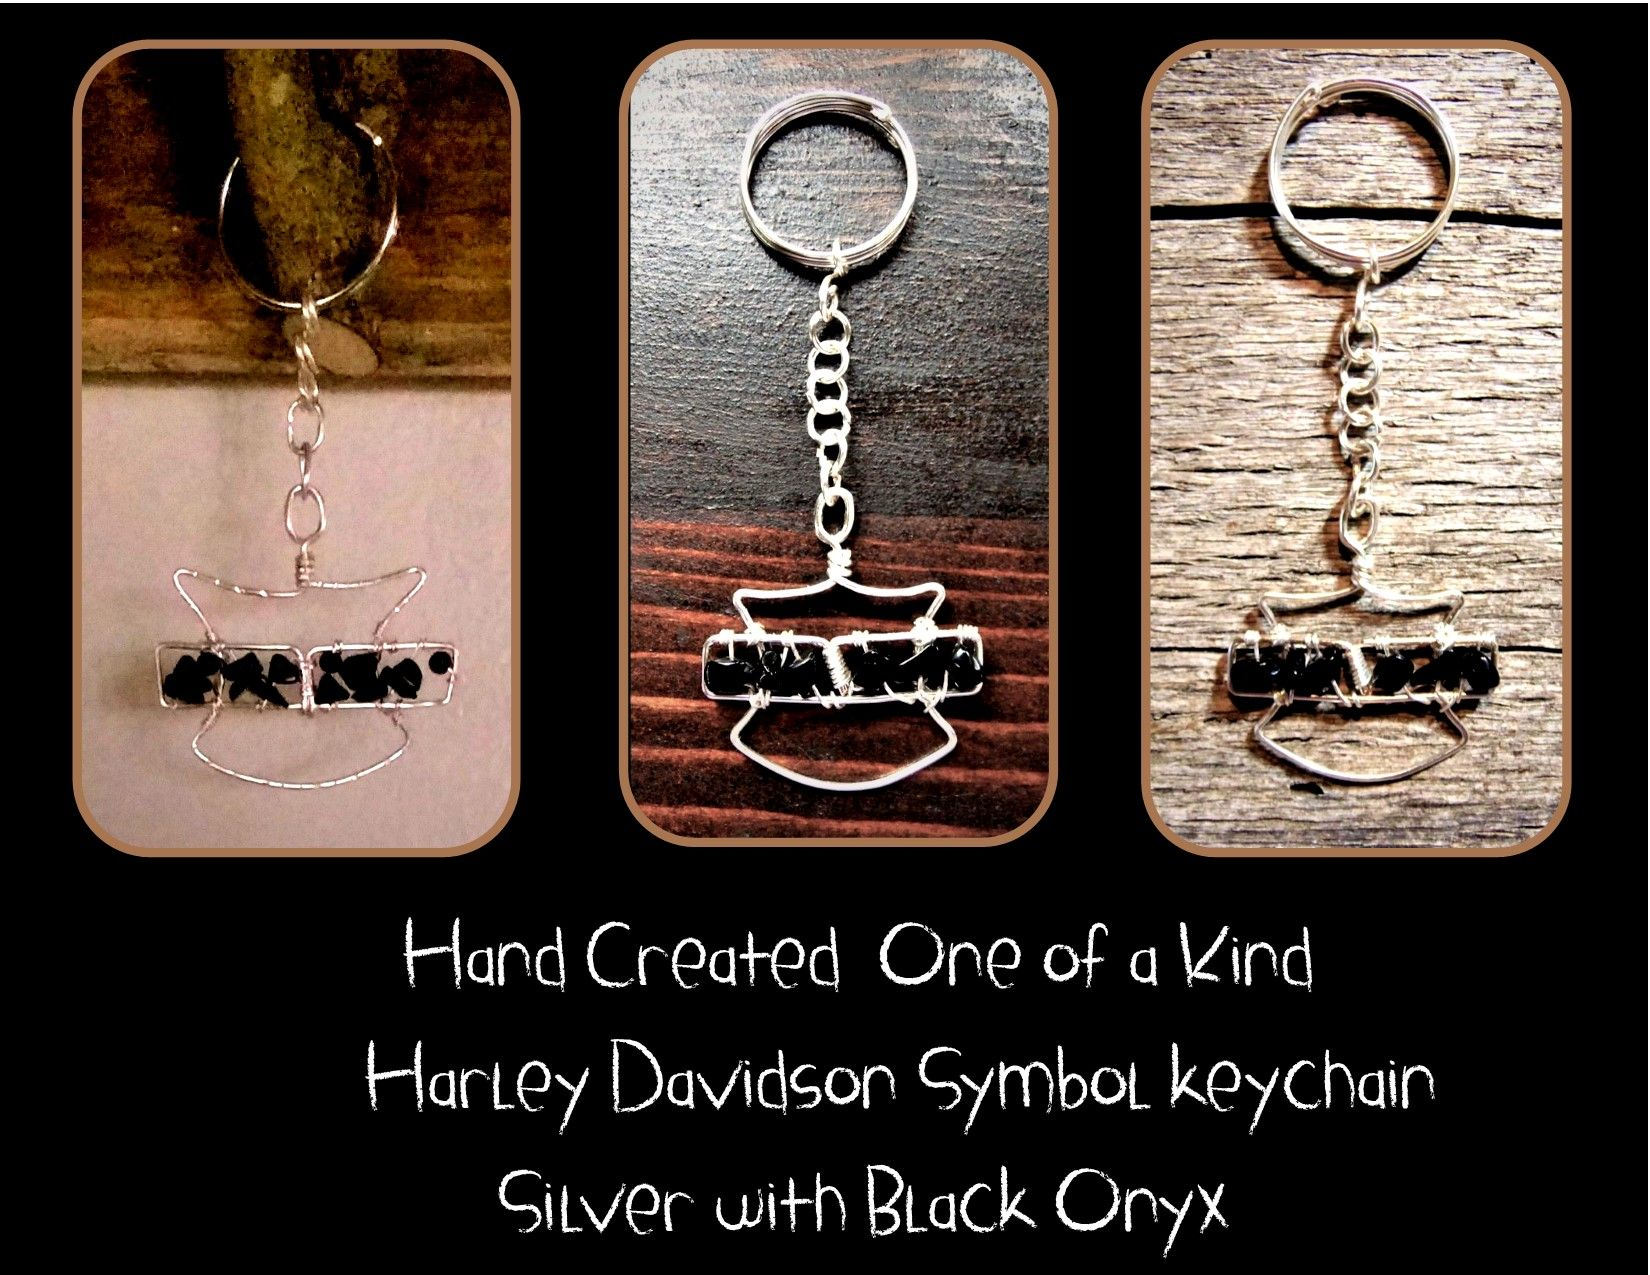 Buy Hand Made Anniversary Gift Harley Davidson Harley Biker Gift Harley Wedding Husband Gift Couples Gift Made To Order From Artistic Creations By Rose Custommade Com